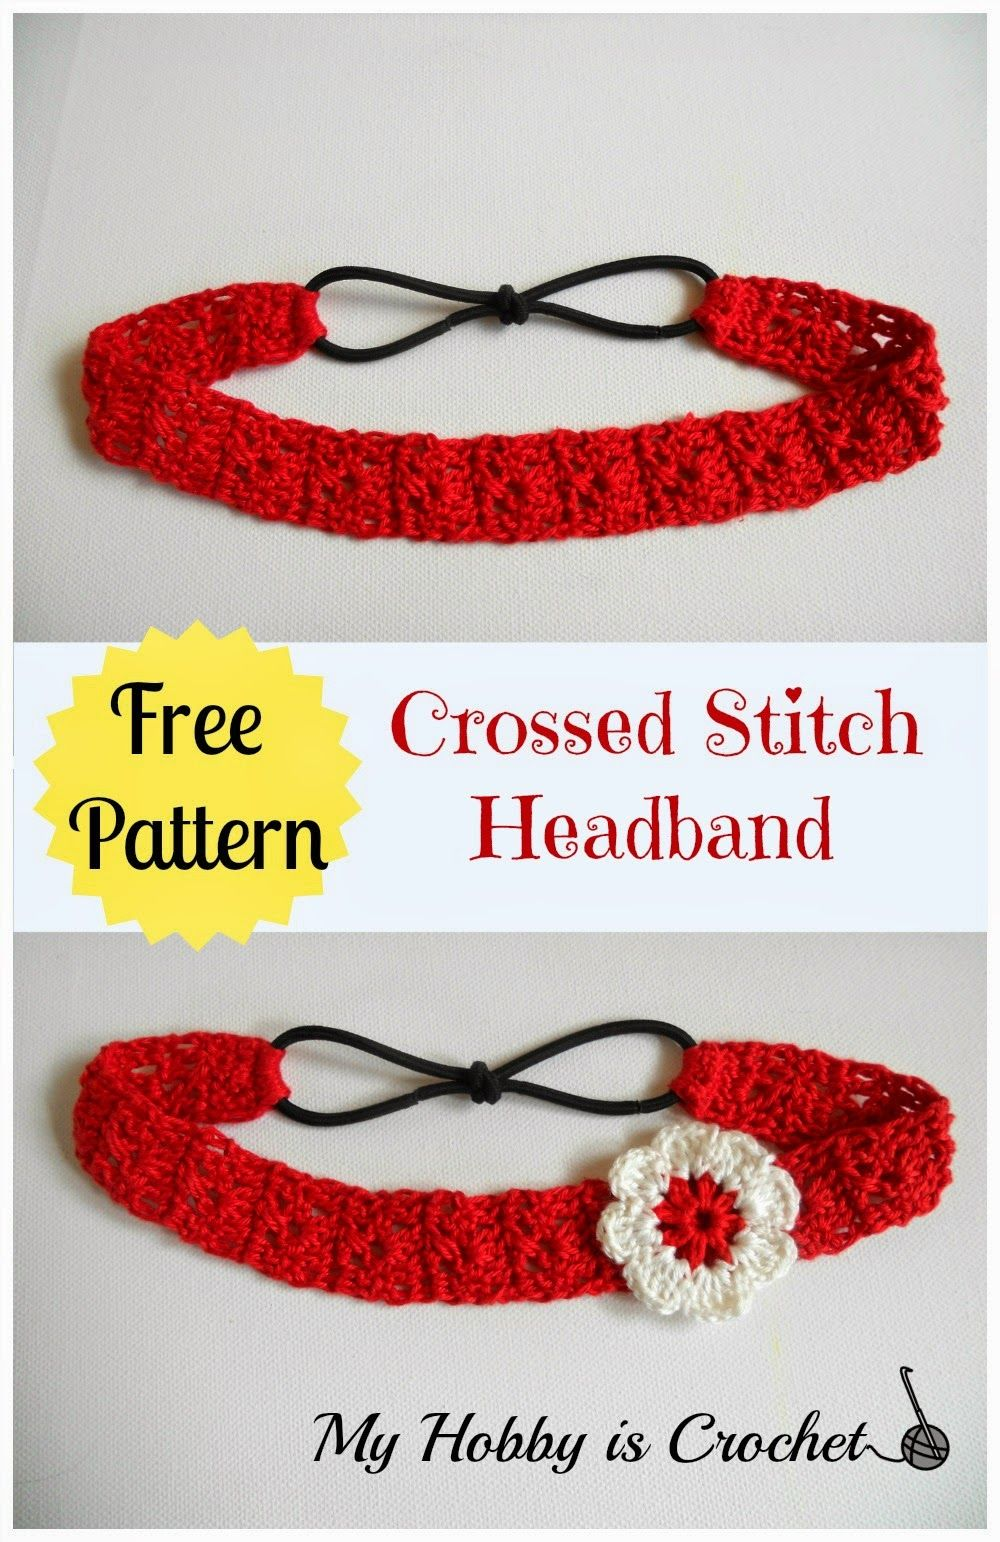 Crossed Stitch Headband with Flower Applique - Free Crochet Pattern ...